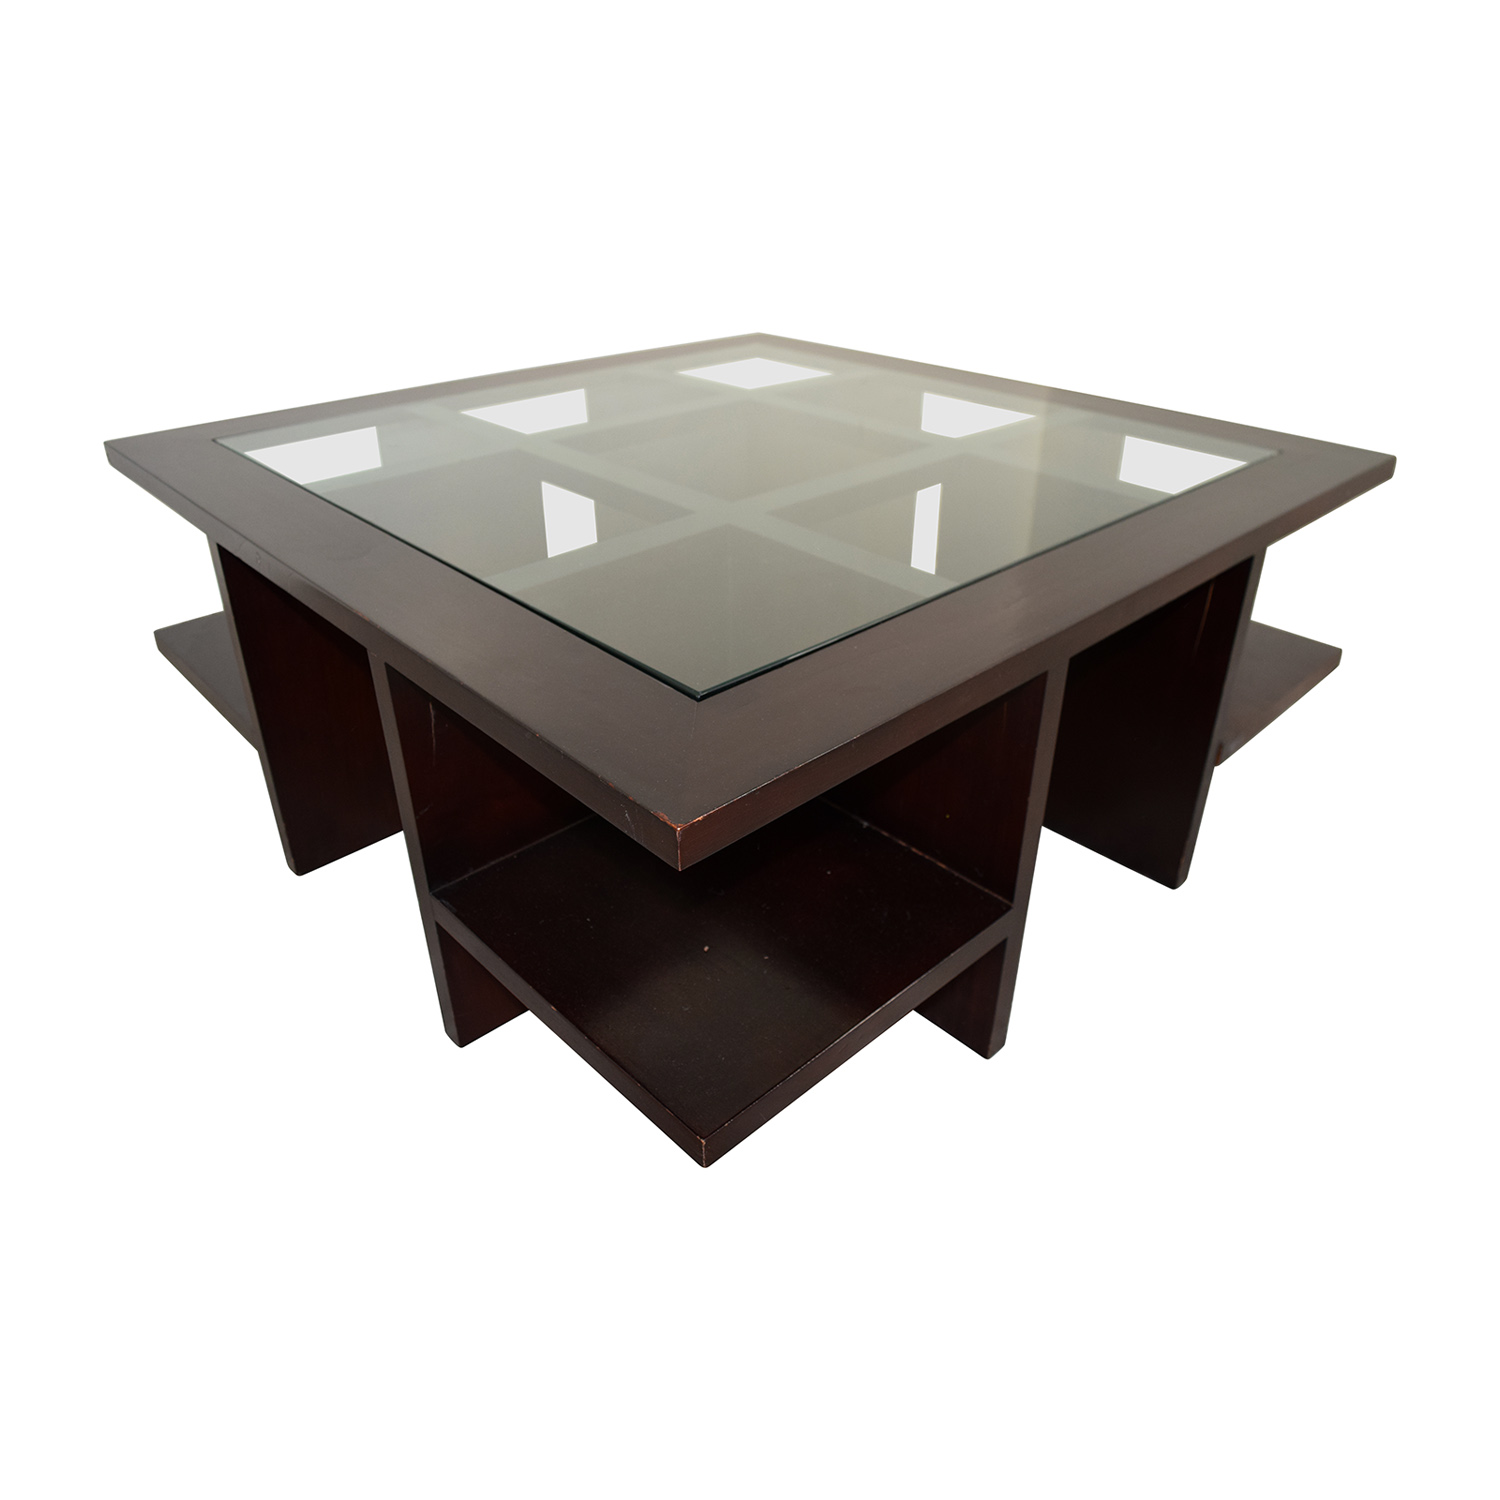 Top Selling Plywood Round Side Wooden Coffee Table And: Moie Moie Wood And Glass Coffee Table With Side